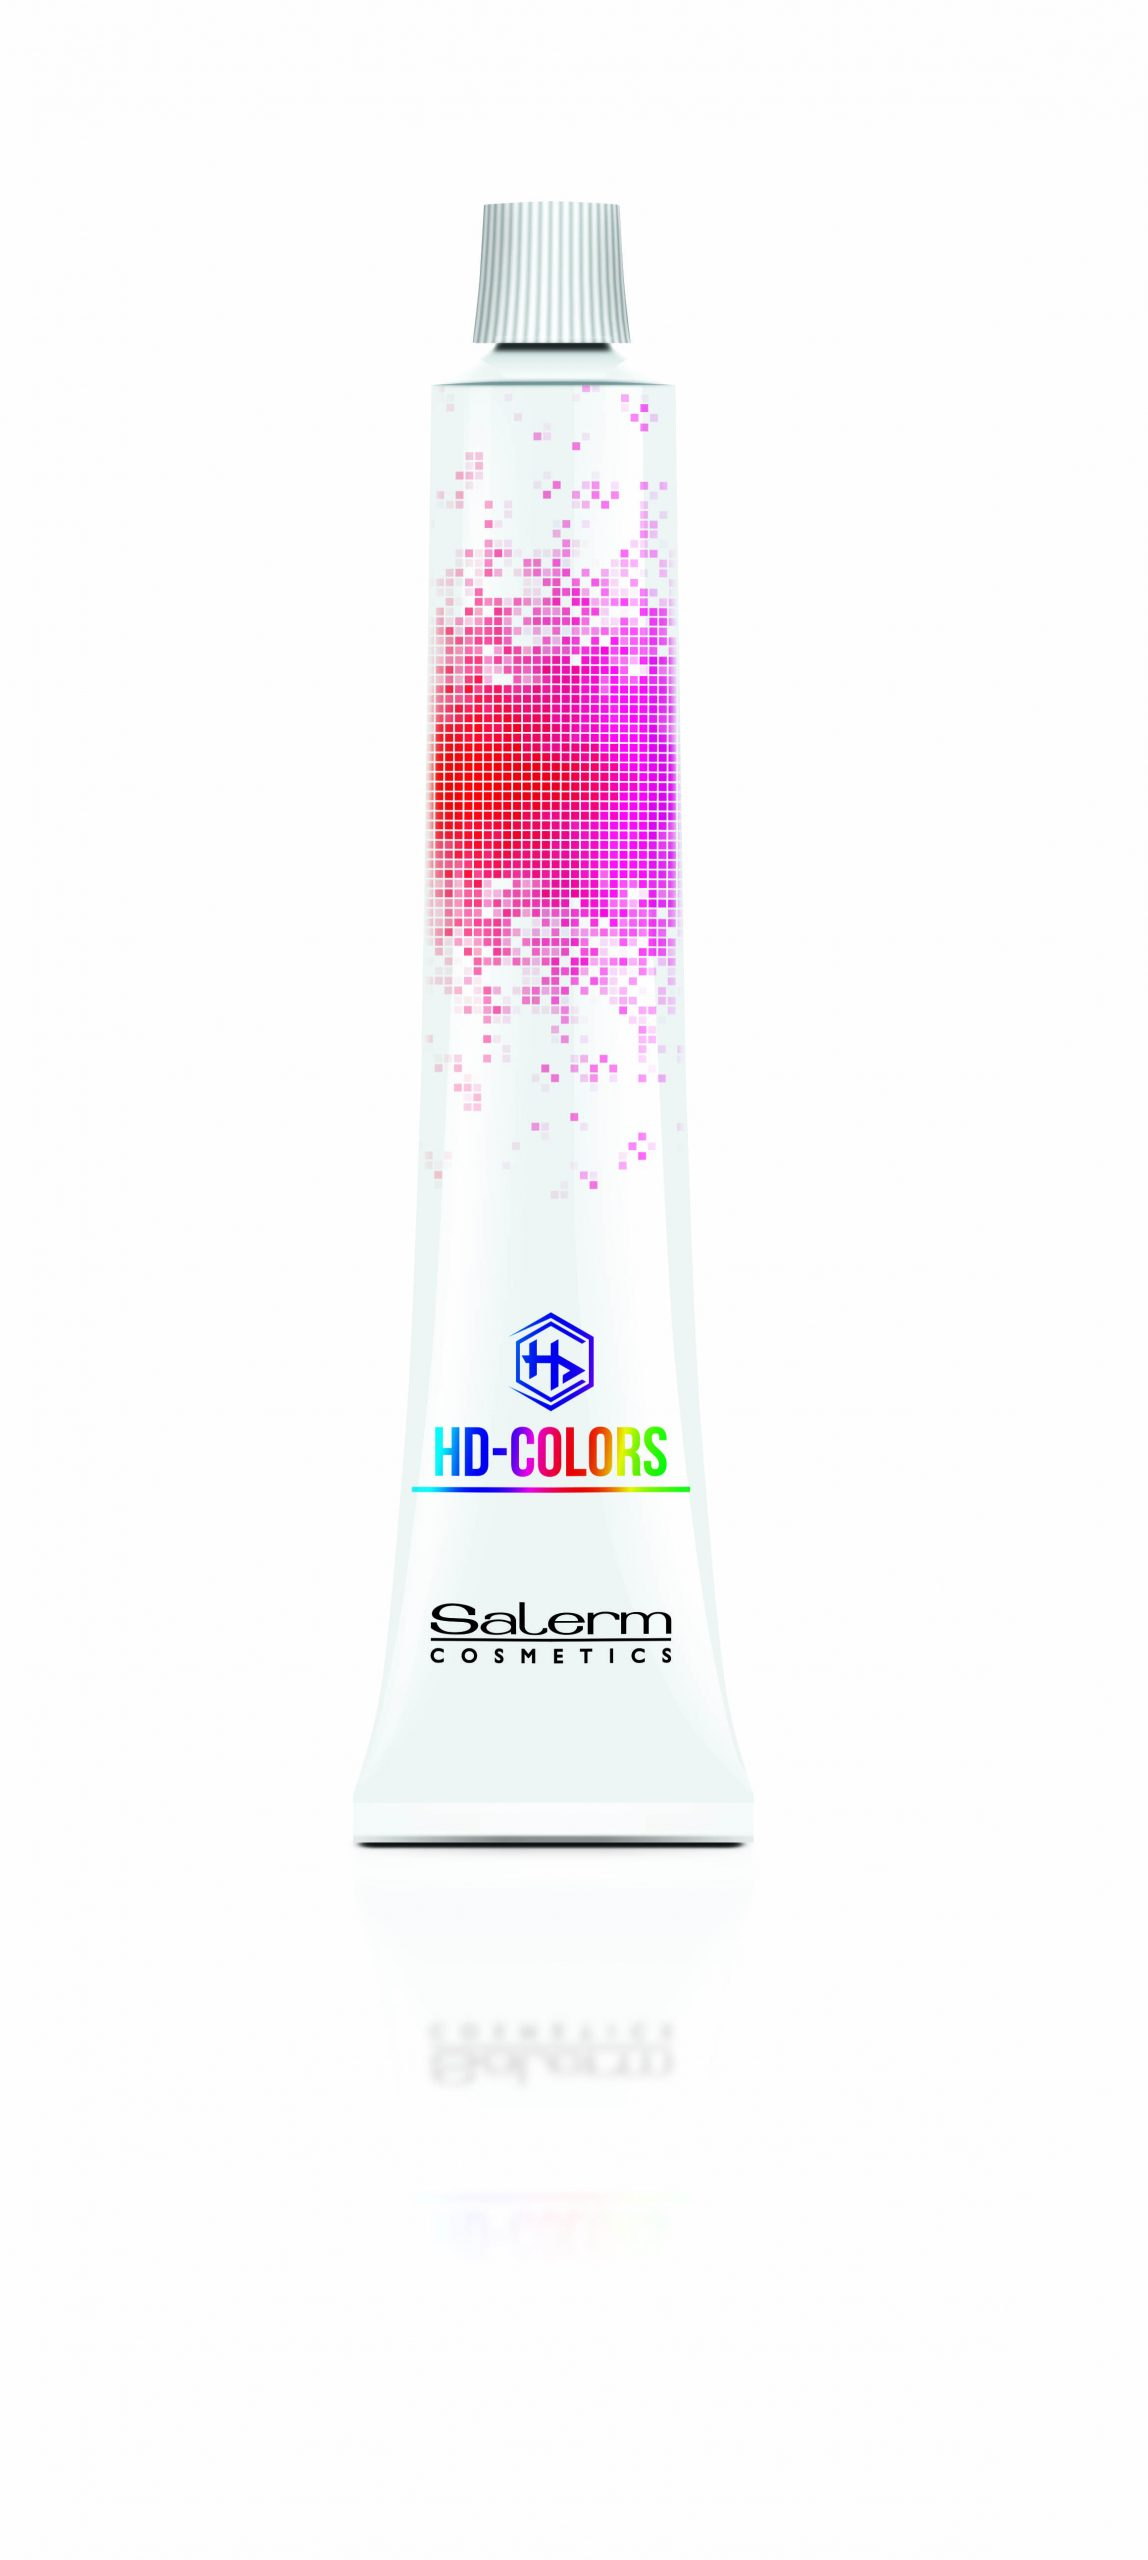 hd colors